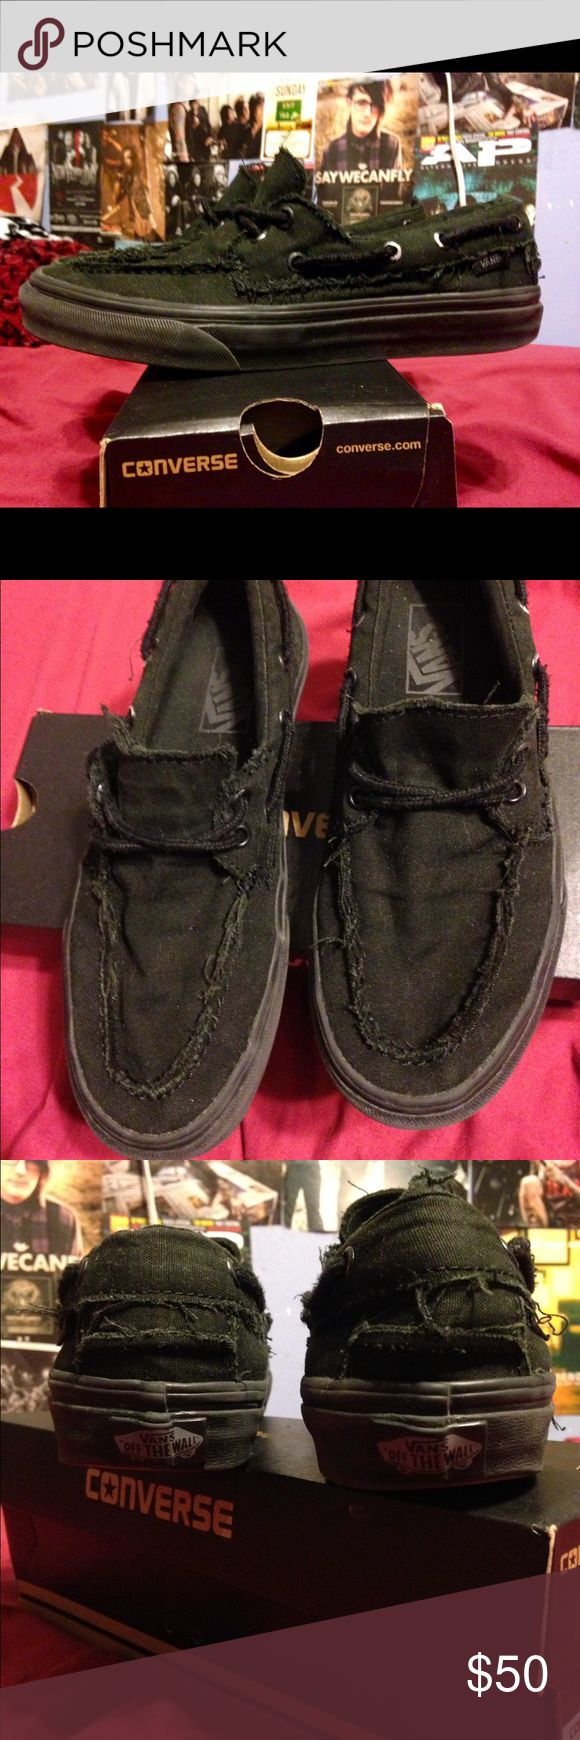 Vans Boat Shoes 40 dollars shipped through playpal :) Size: women's 8 mens: 7.5 worm a few times but washed and looks new :) Vans Shoes Sneakers